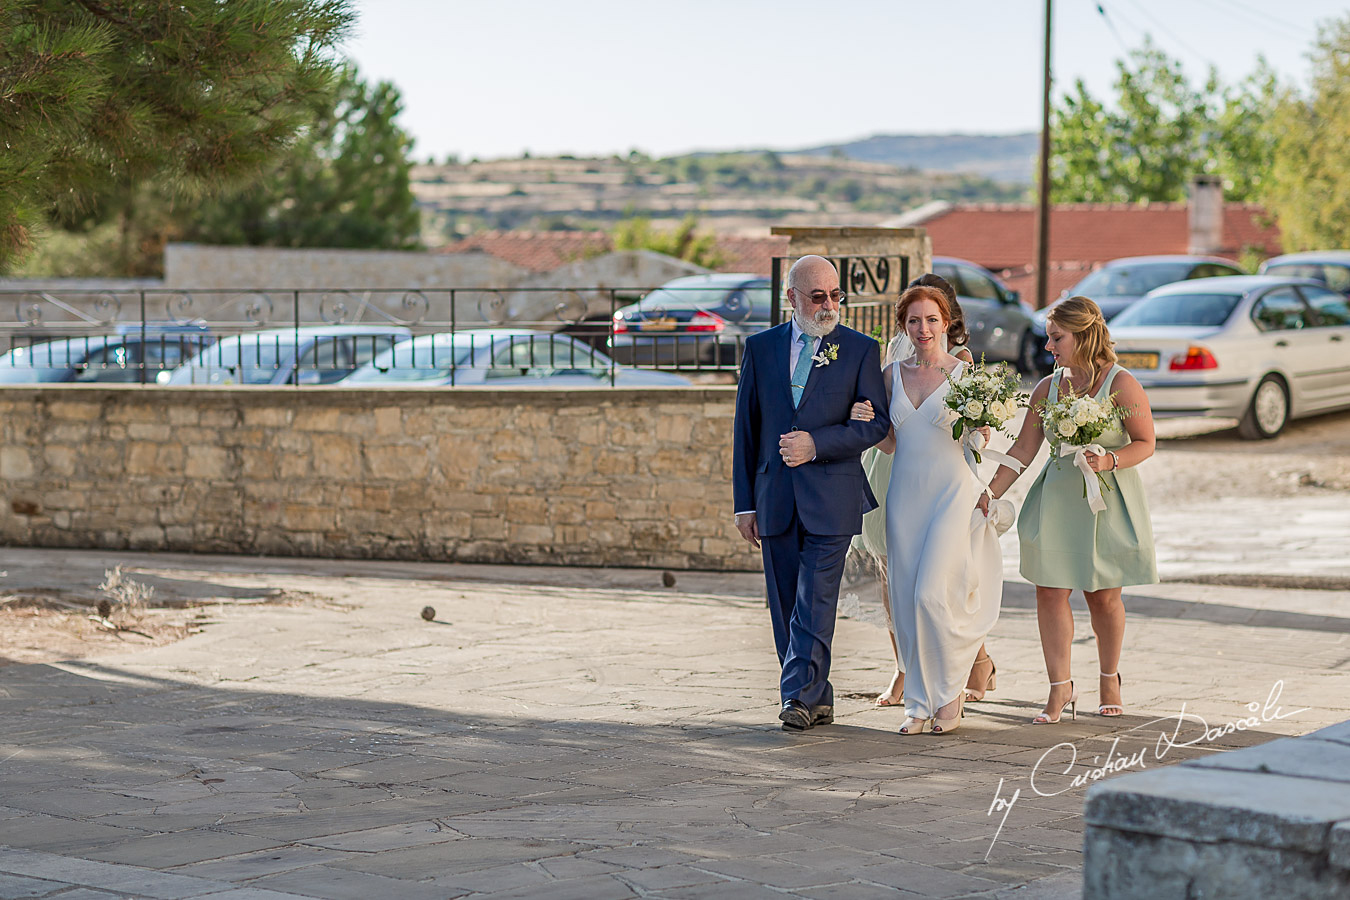 Wedding Celebration at Apokryfo - 32